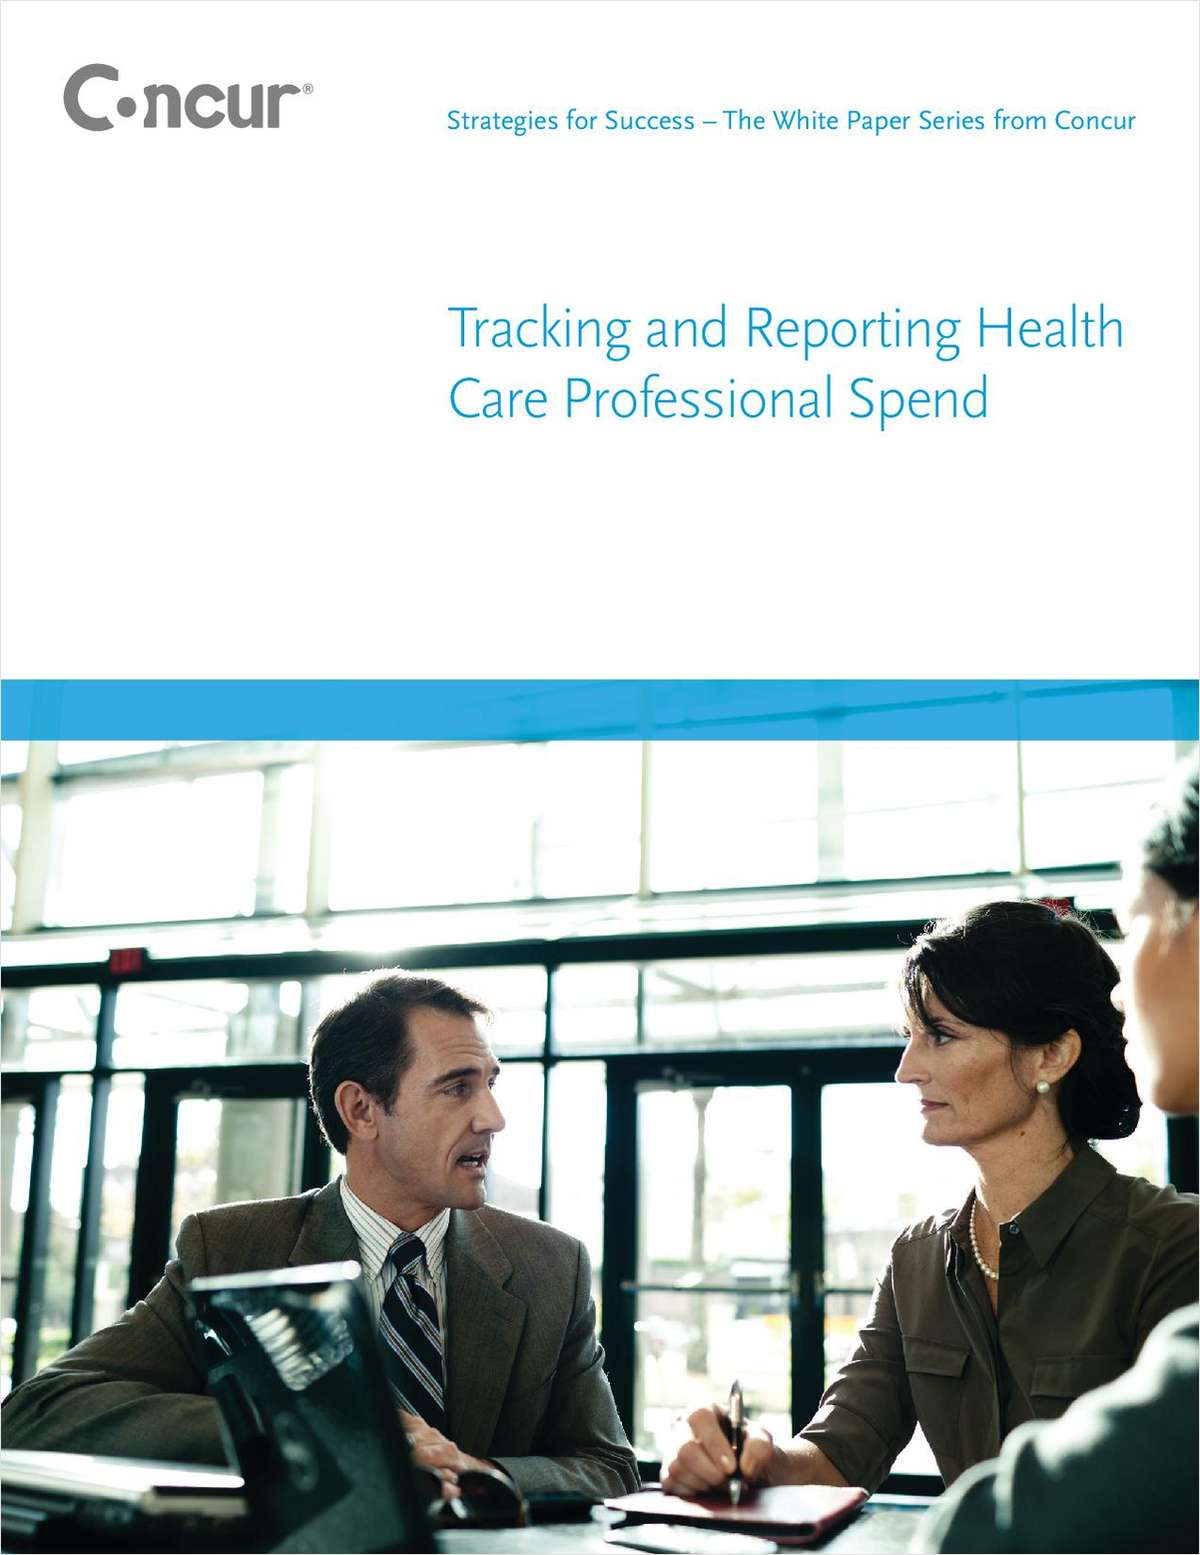 Tracking and Reporting Health Care Professional Spend